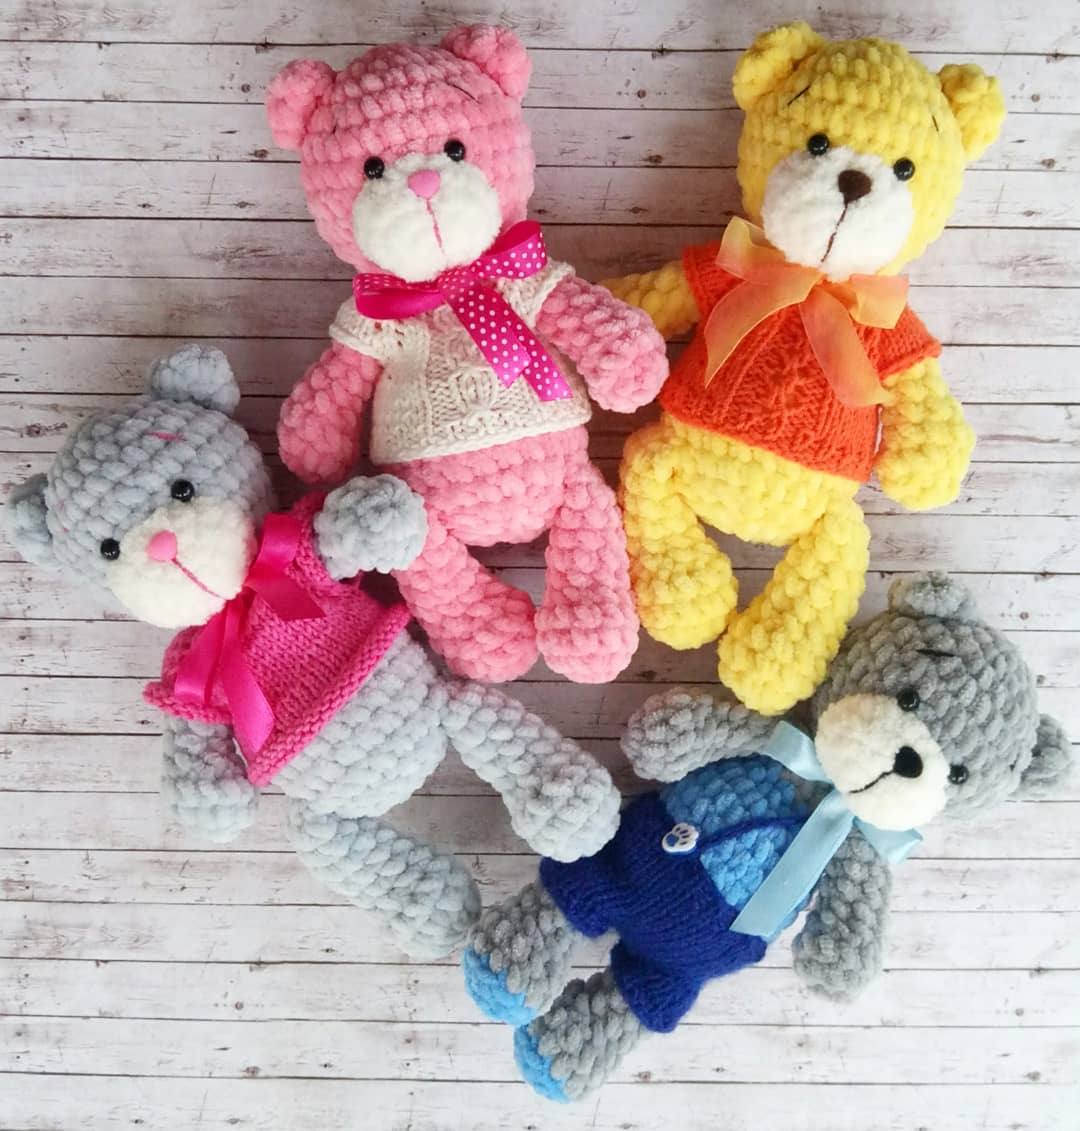 Crochet amigurumi pattern Plush Bears Brownie + Crochet outfit | 1131x1080